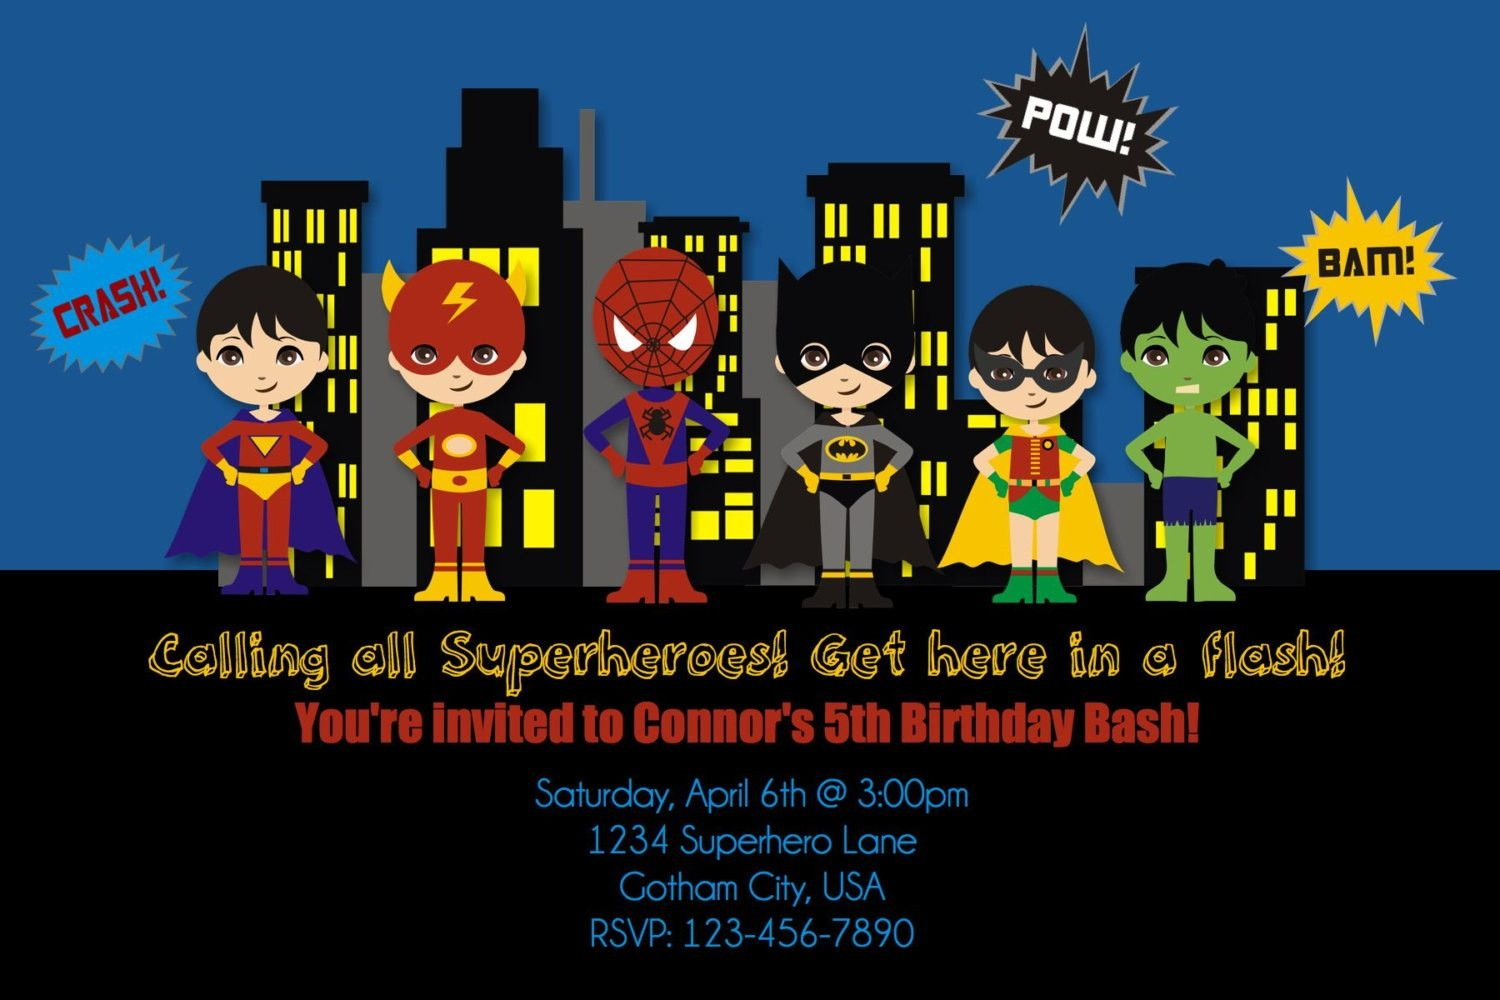 Free Printable Superhero Birthday Invitation Templates Create Your - Free Printable Superhero Birthday Invitation Templates